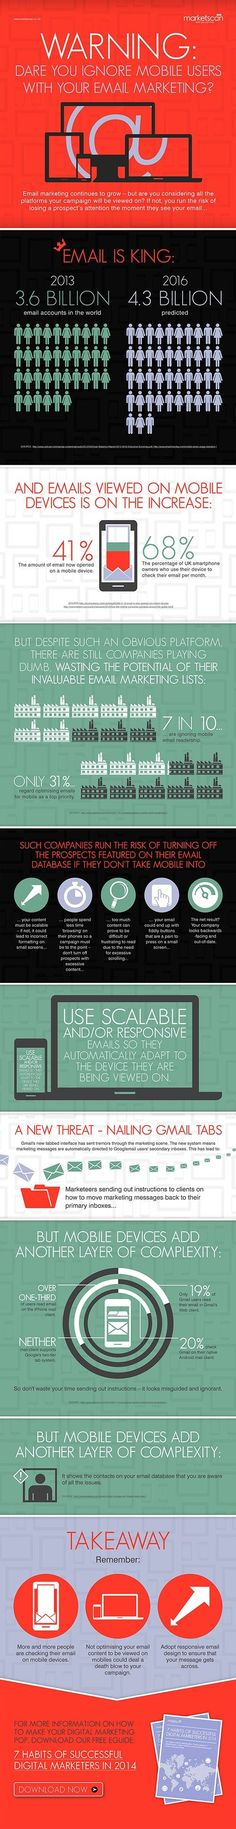 Warning: Dare You Ignore Mobile Users With Your Email Marketing?   #Infographic #EmailMarketing #MobileUsers